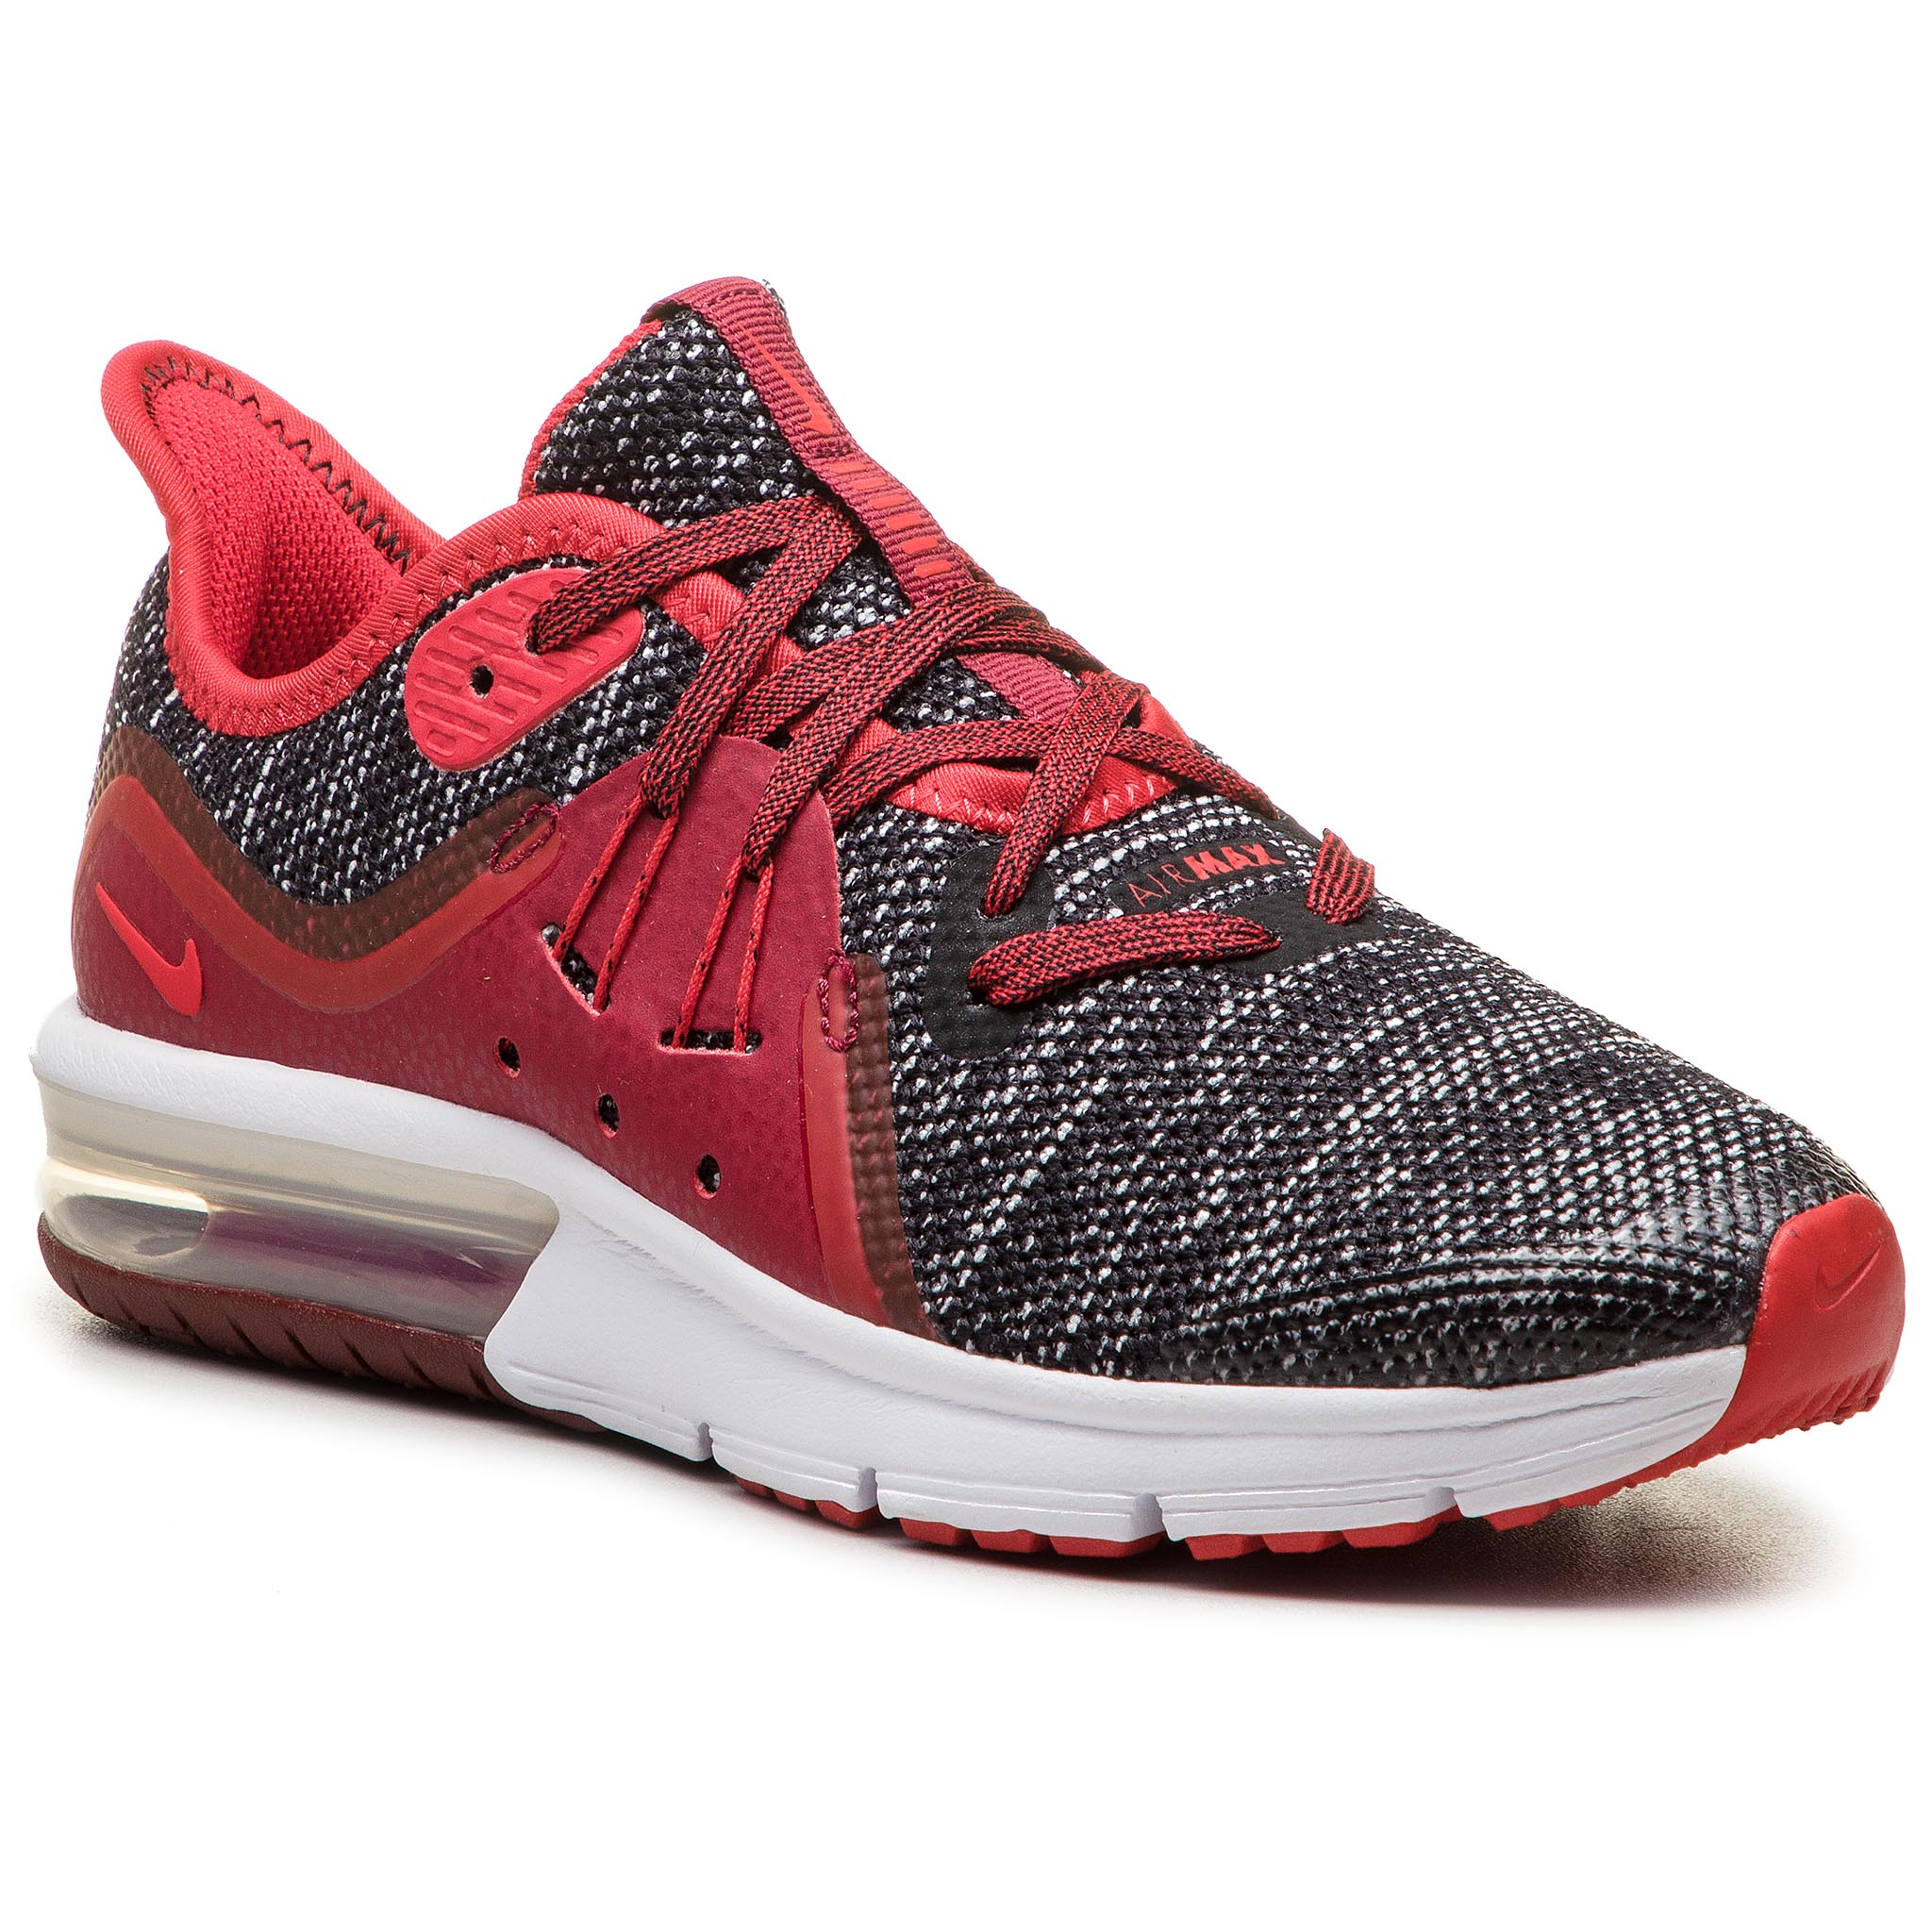 NIKE Air Max Sequent 3 (GS) 922884 009 - Glami.cz 83fbbfb034